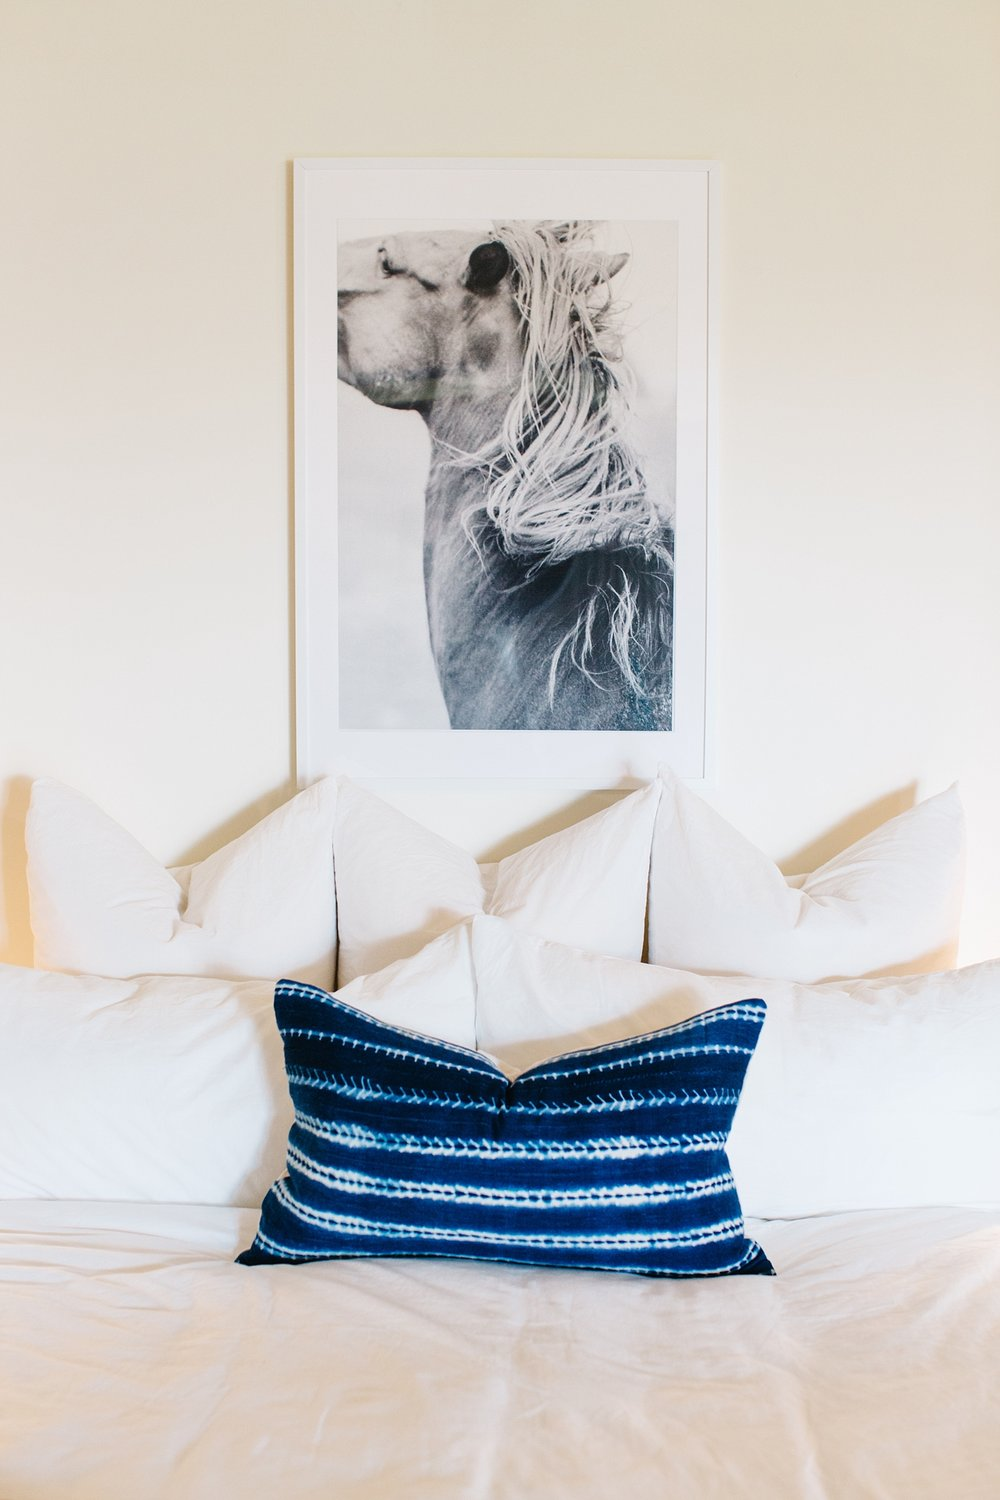 Possessing a powerful intensity, the authentic African indigo mudcloth pillow and the black and white print are the pieces I chose to really define this space.  The white frame melts into the wall bringing the potency of the black and white equine print to the forefront. The strong shade of indigo of the lumbar pillow becomes an additional focal point, with the pattern elevating it to textile art.